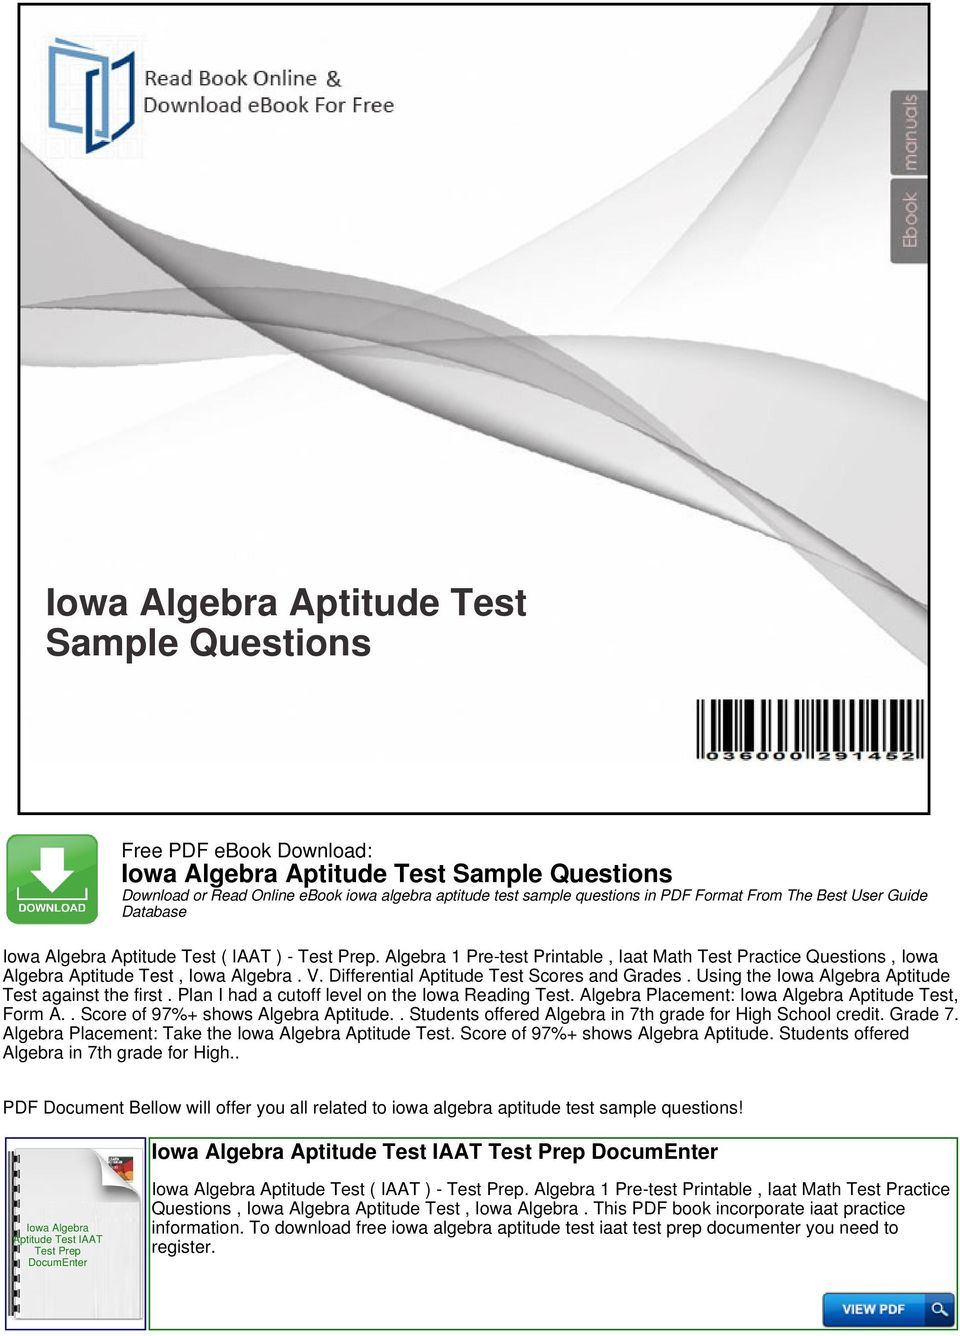 Iowa Algebra Aptitude Test Sample Questions - PDF